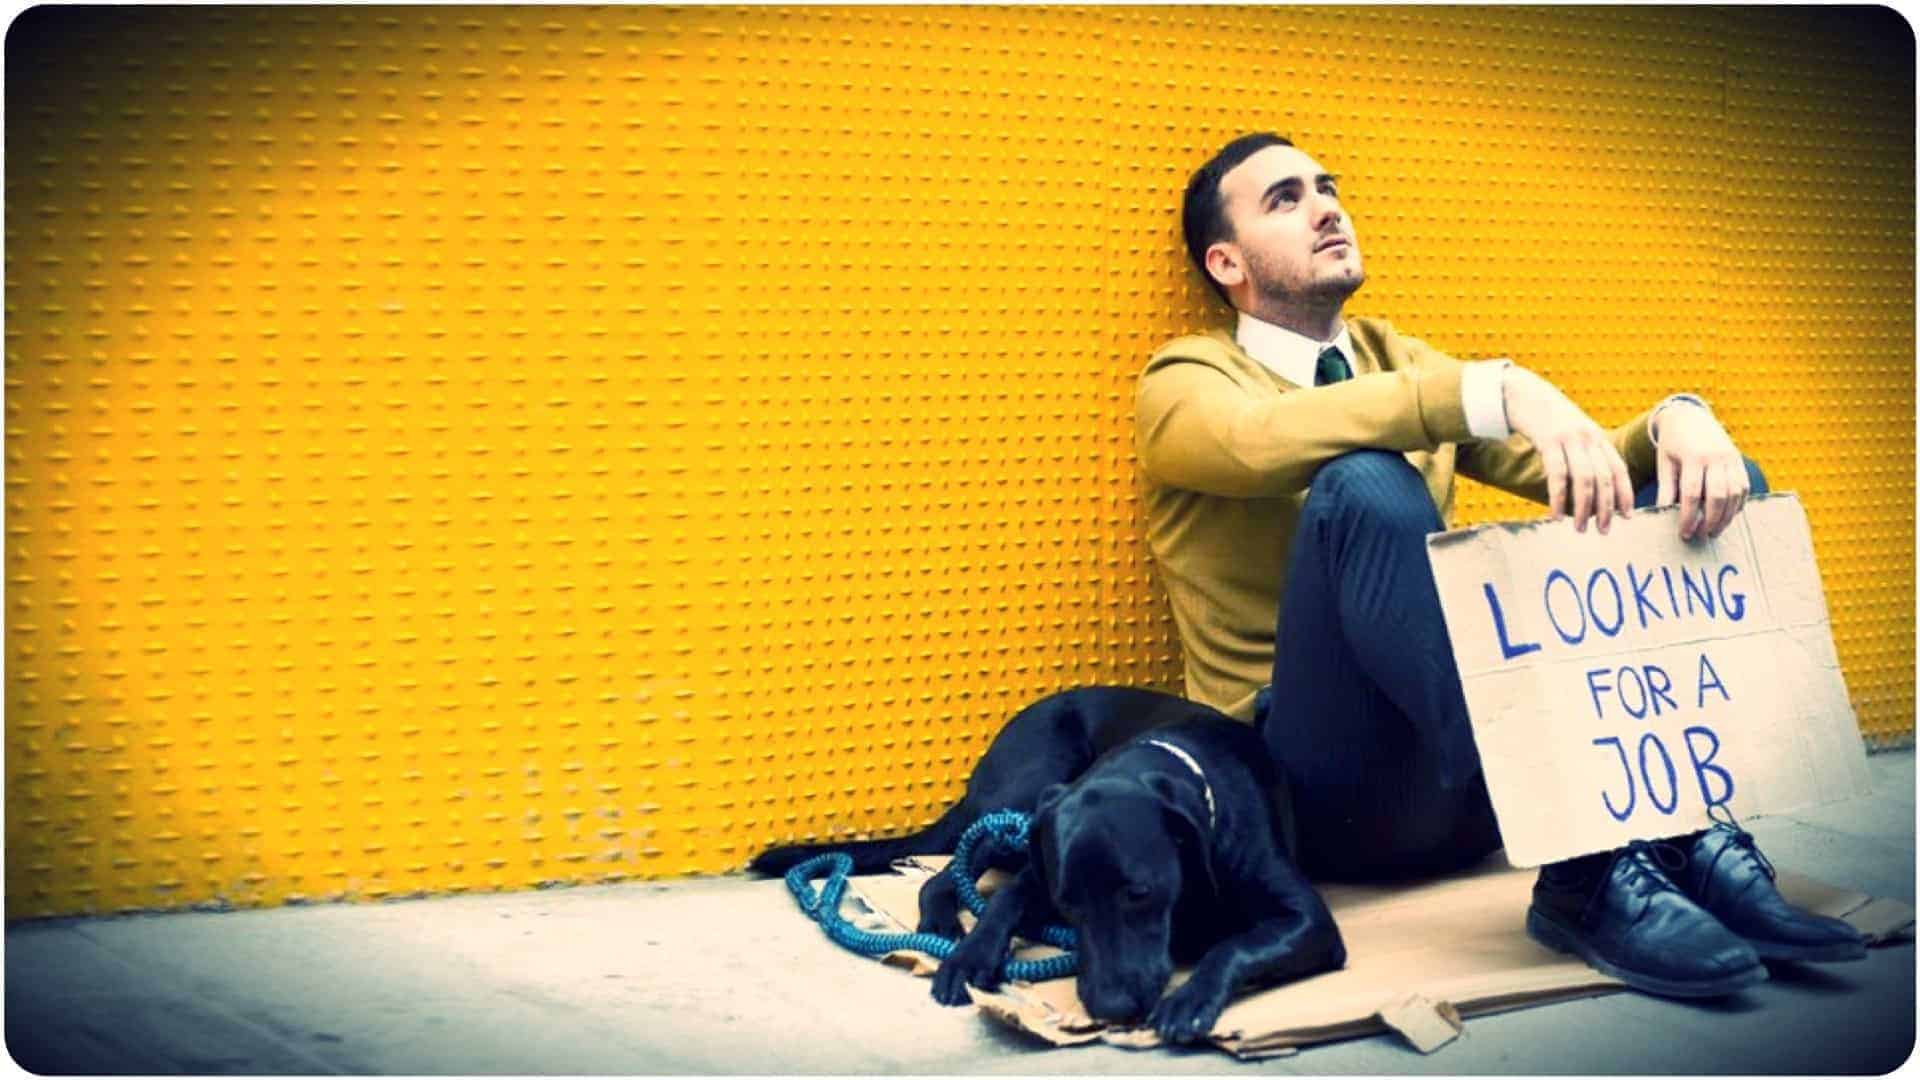 """A smartly dressed person holding a handwritten sign with """"Looking for a job"""" written upon it, sitting atop a piece of cardboard on the sidewalk along side a beautiful black dog."""